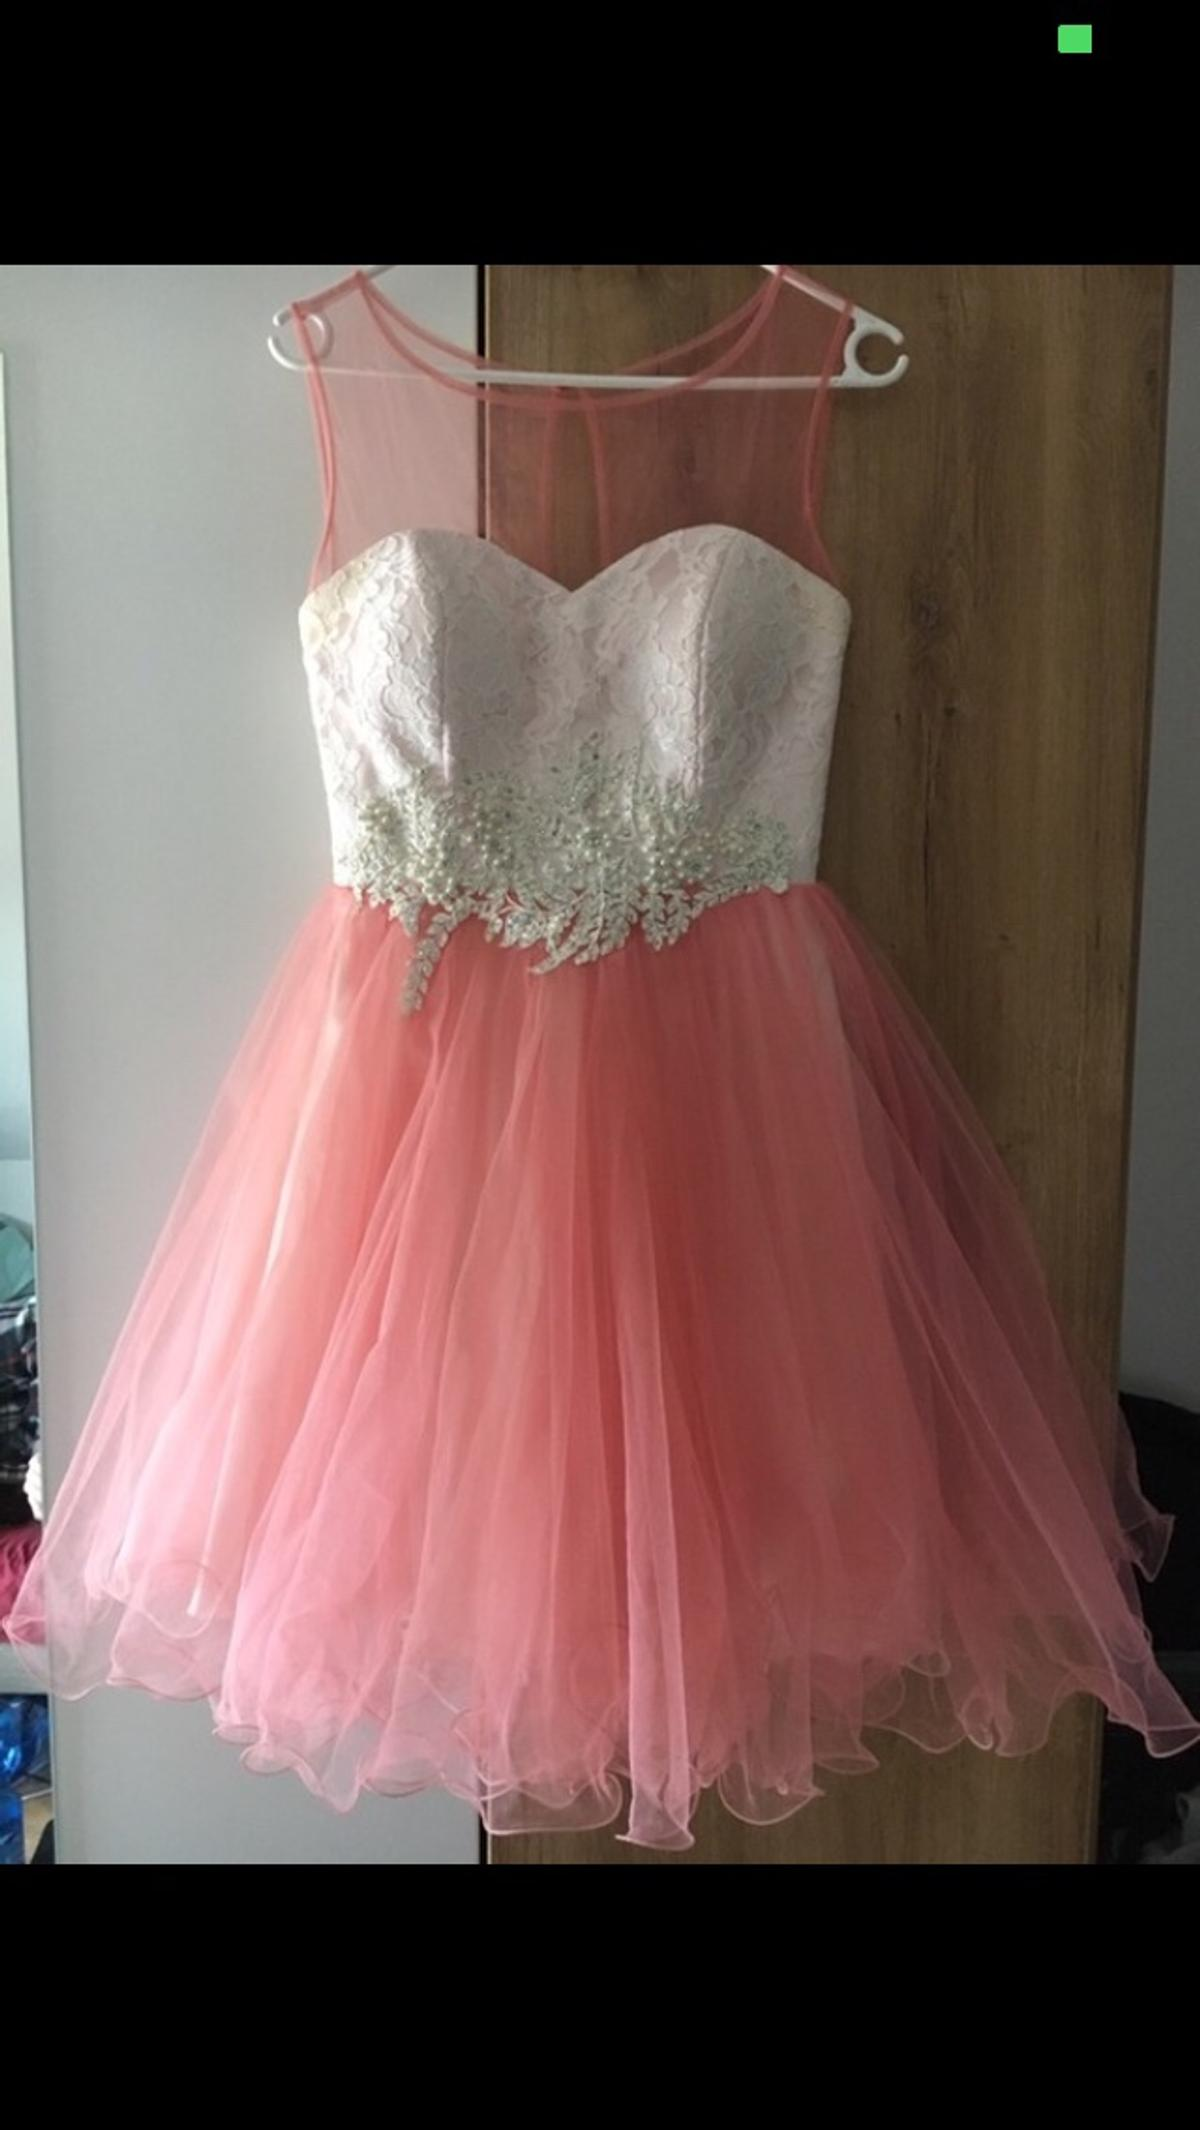 pinkes kleid in 33415 verl for €20.00 for sale | shpock